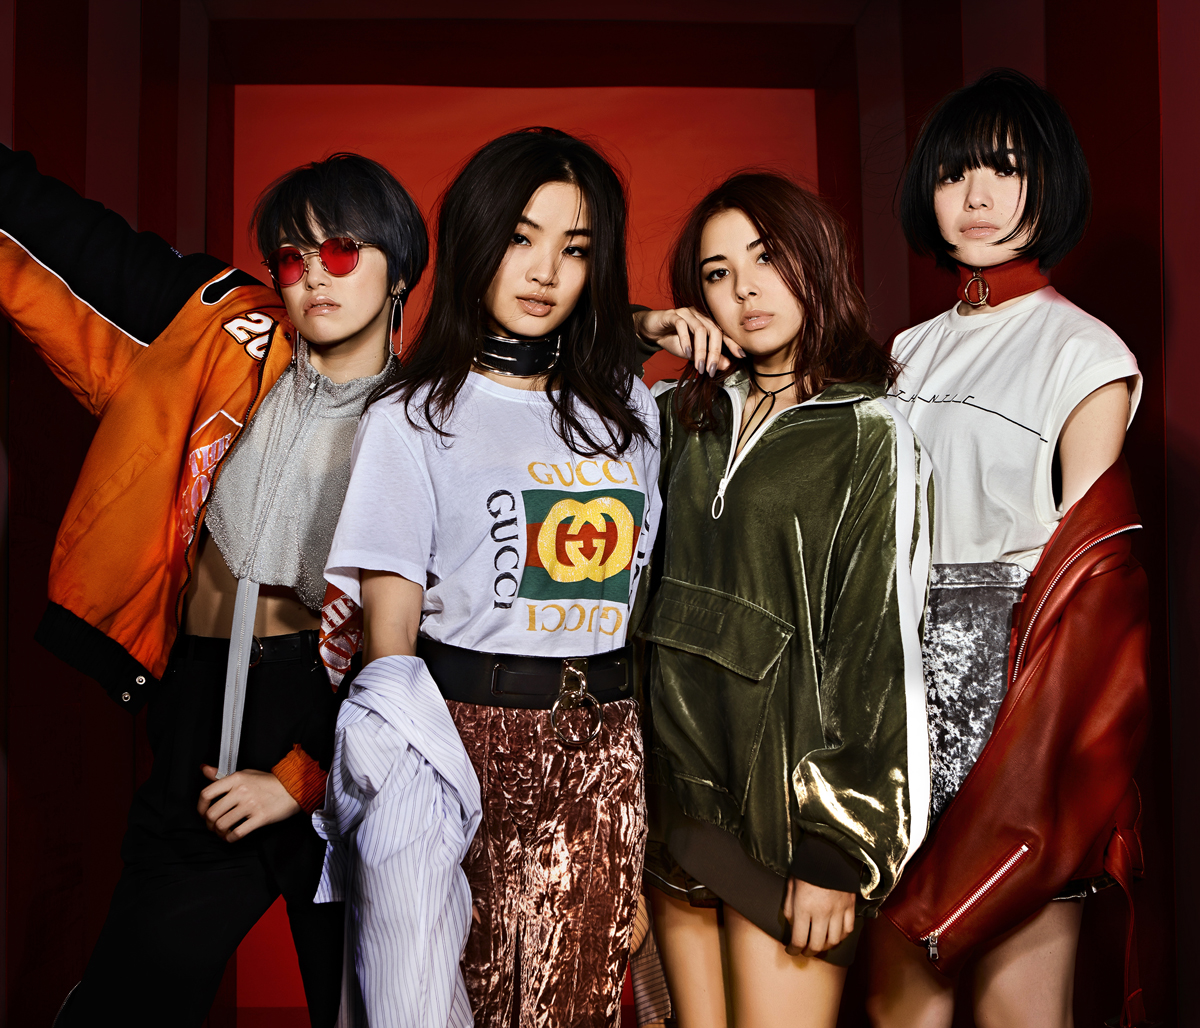 New Japanese girl group FAKY racing up the charts with Surrender